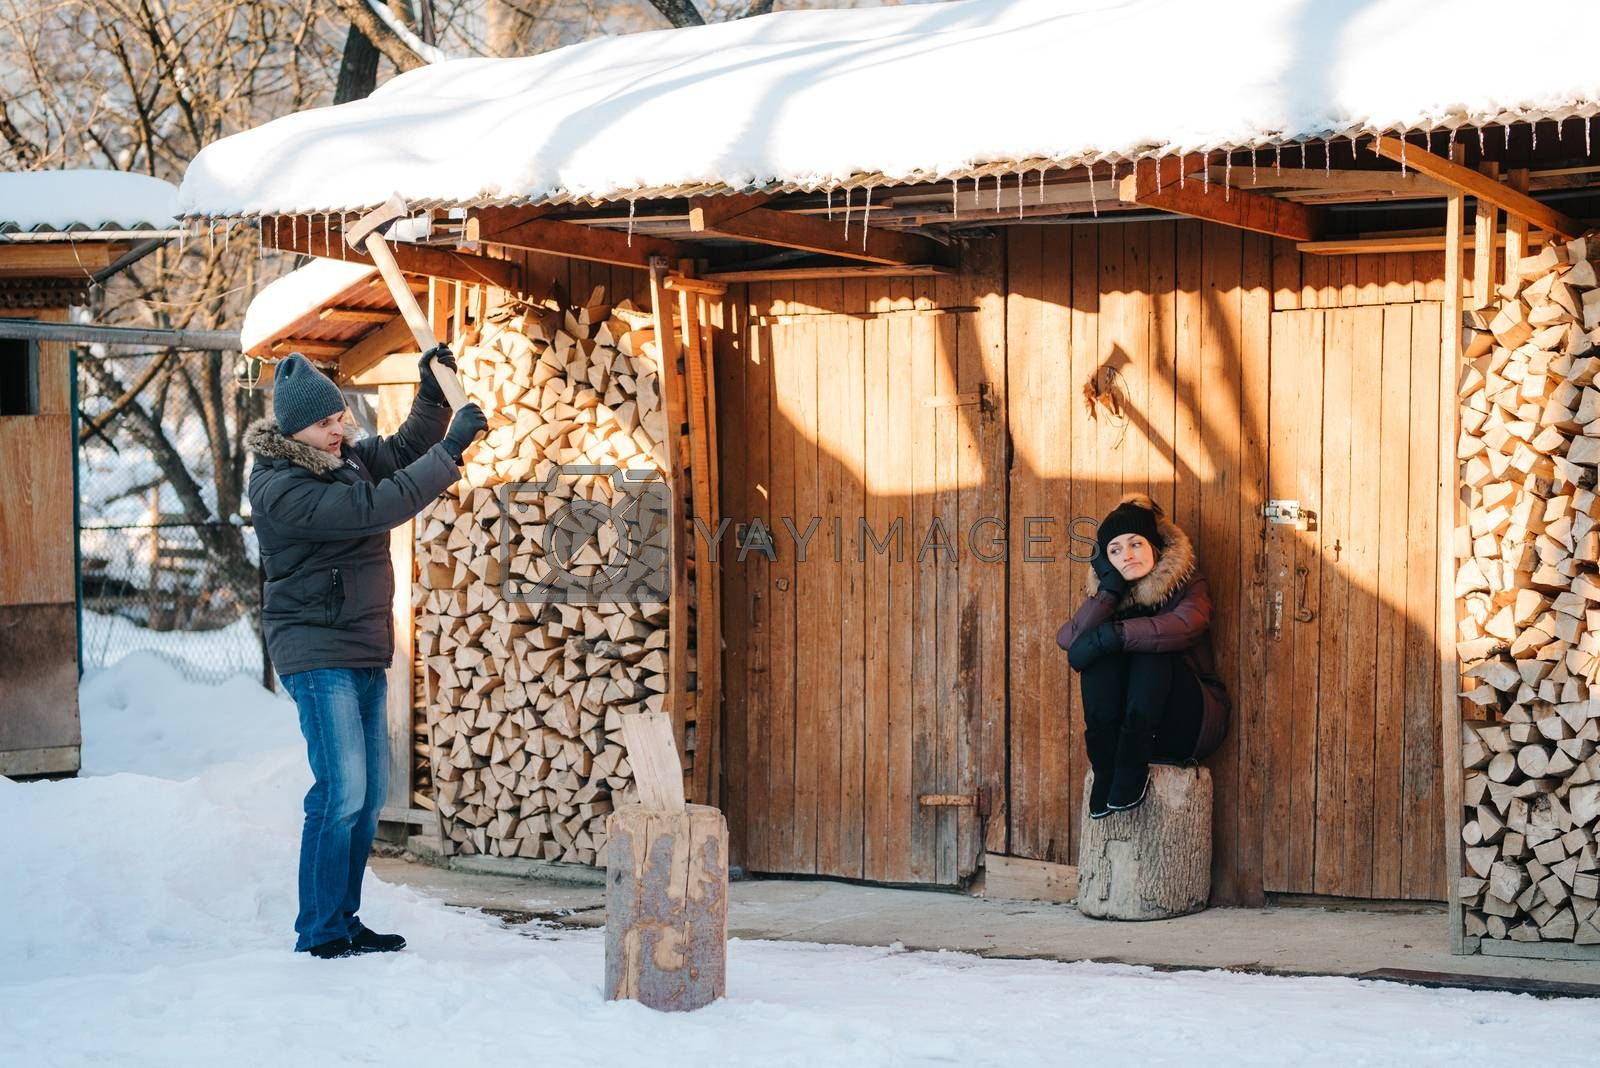 guy in winter clothes chopping wood in the yard, covered with snow